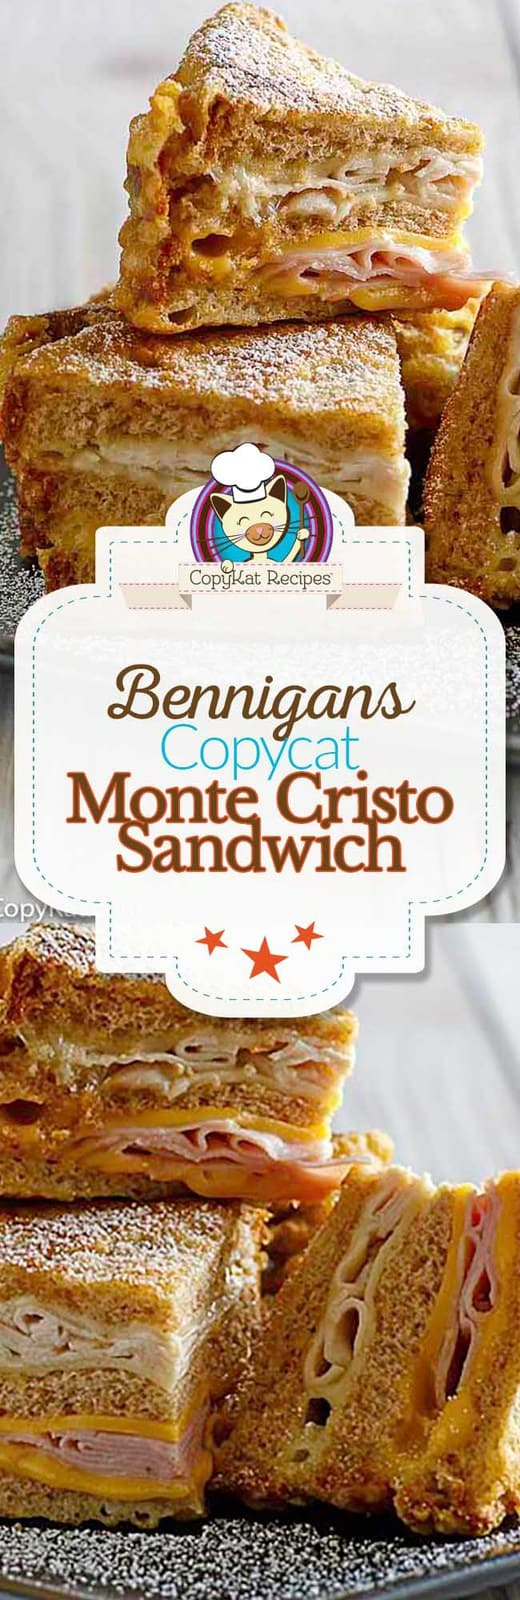 Recreate this classic Bennigan's favorite - the Monte Cristo Sandwich at home.   #copycat #copycatrecipe #bennigans #sandwich